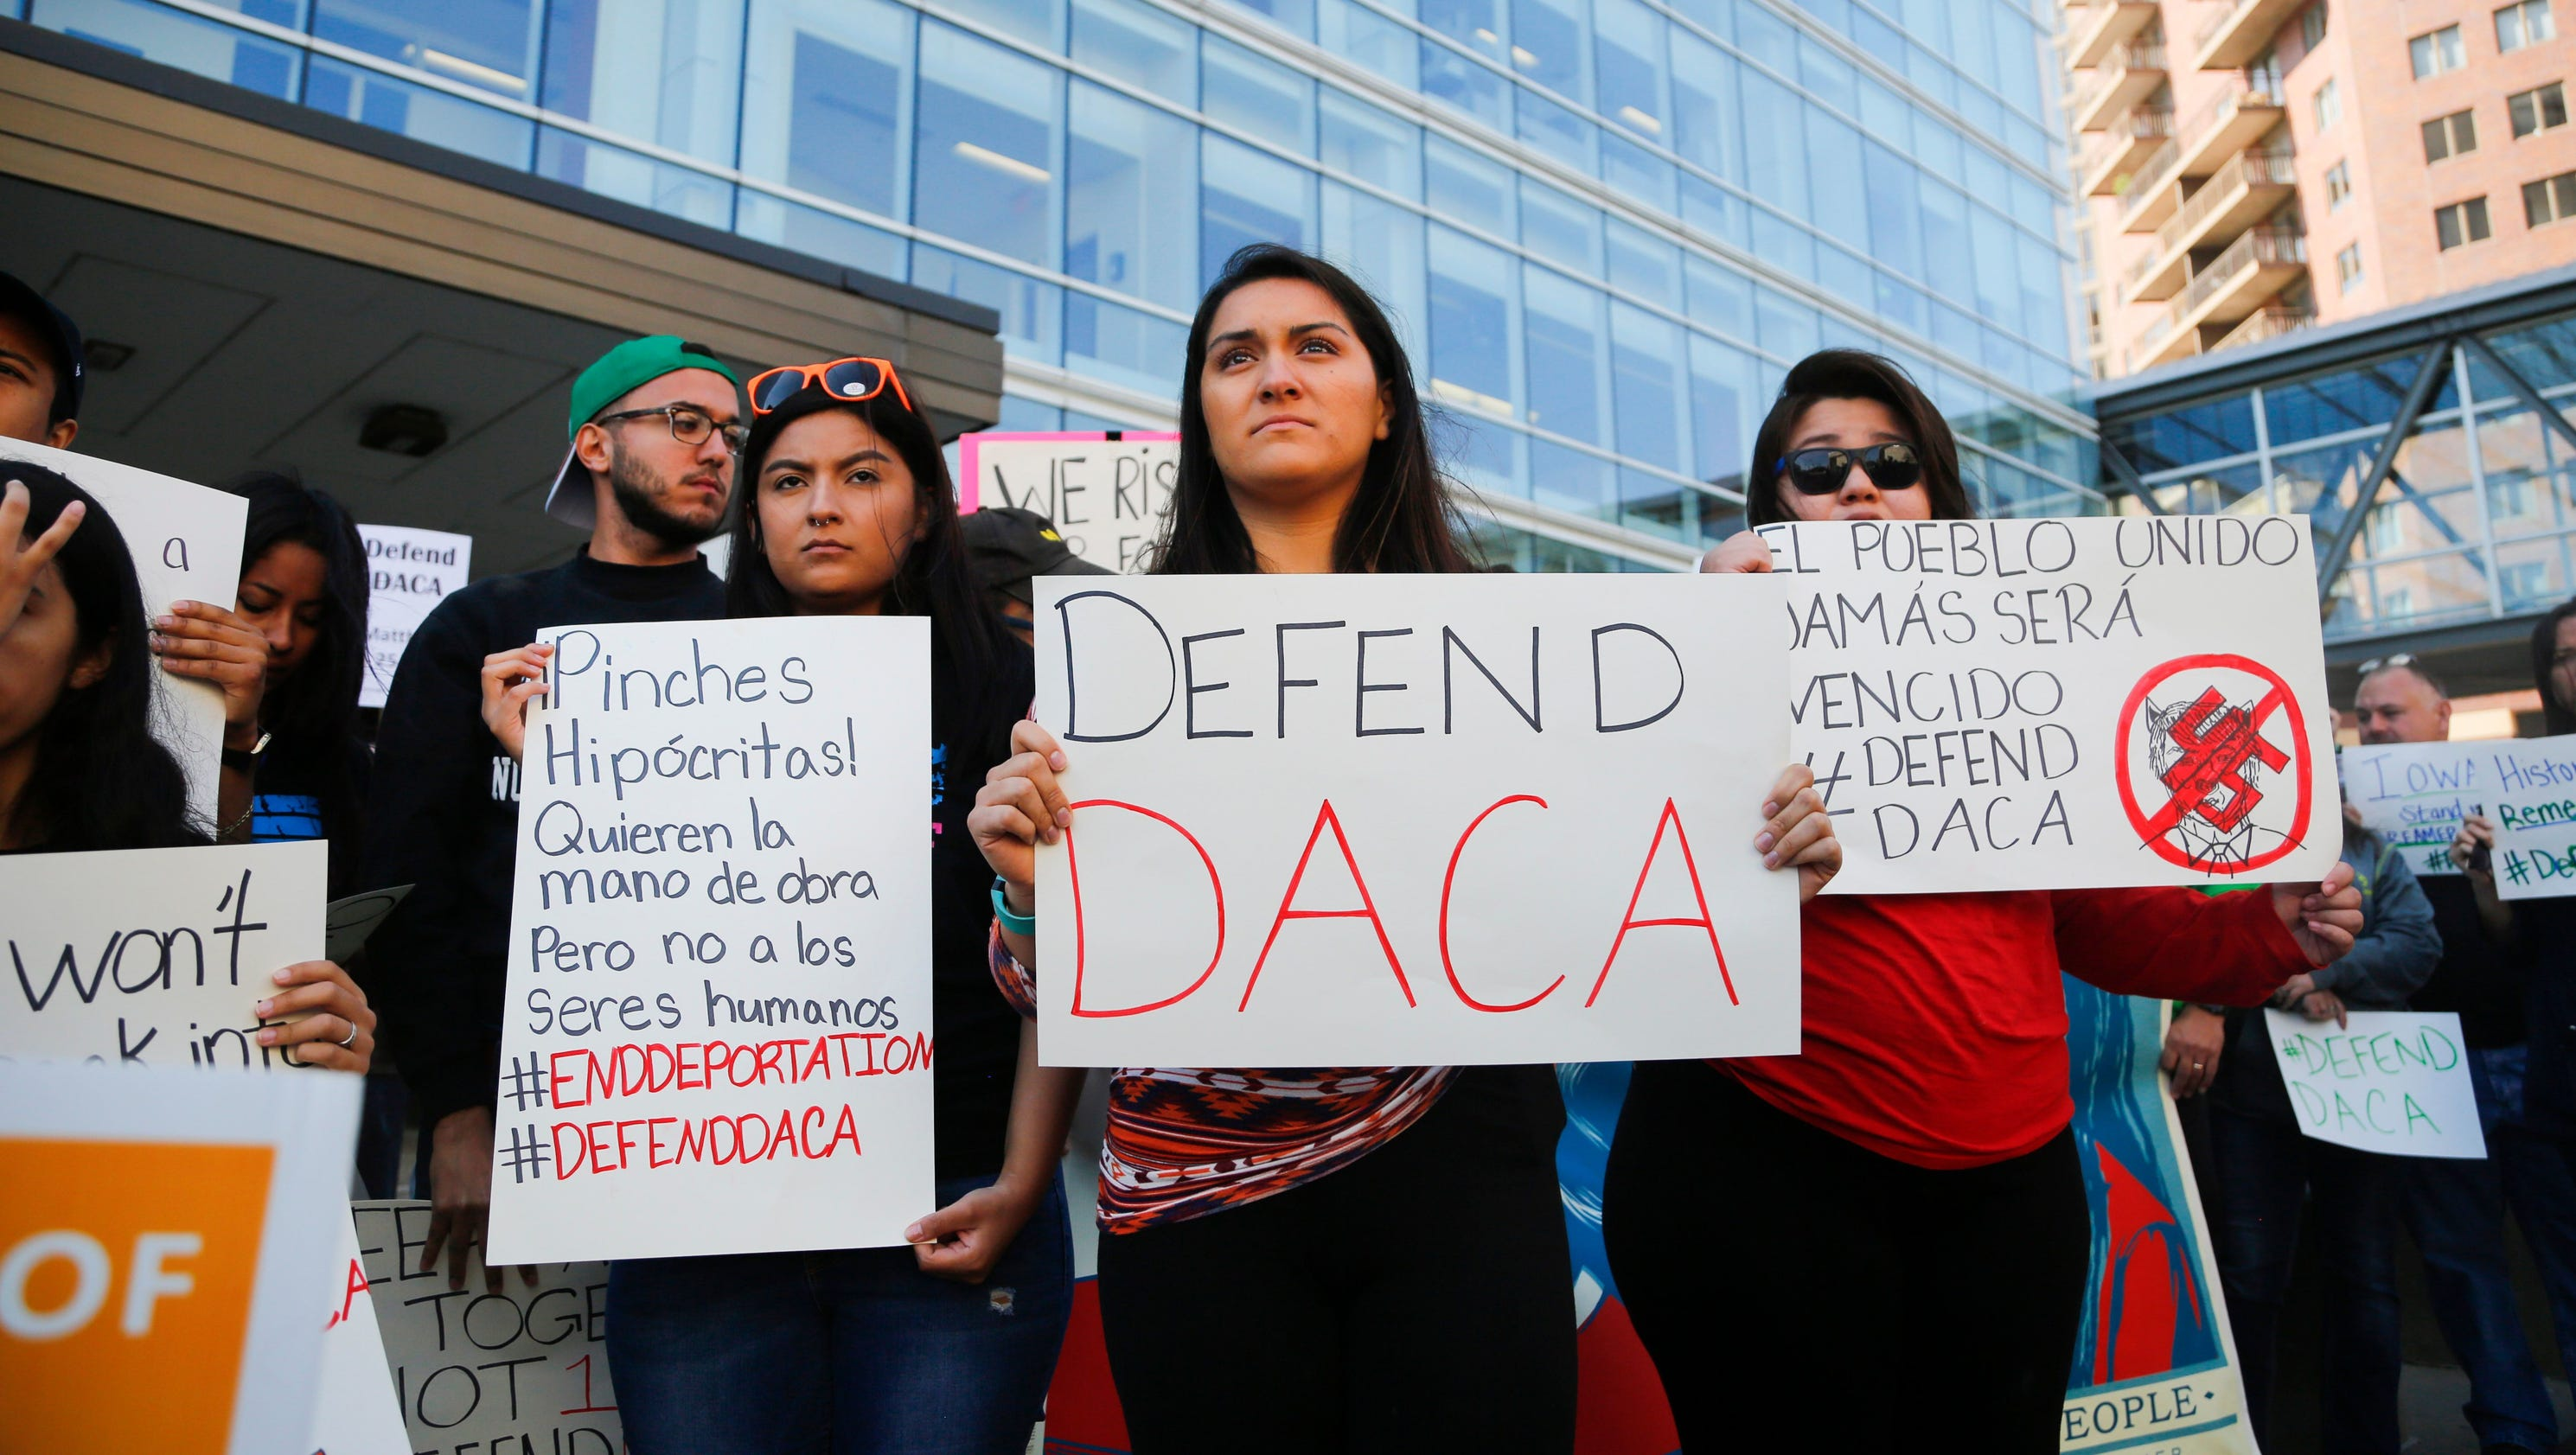 """path to citizenship For many in the immigrant rights and pro-immigration communities, the absence of a """"path to citizenship"""" is a deal-breaker for immigration reform proposals, ."""